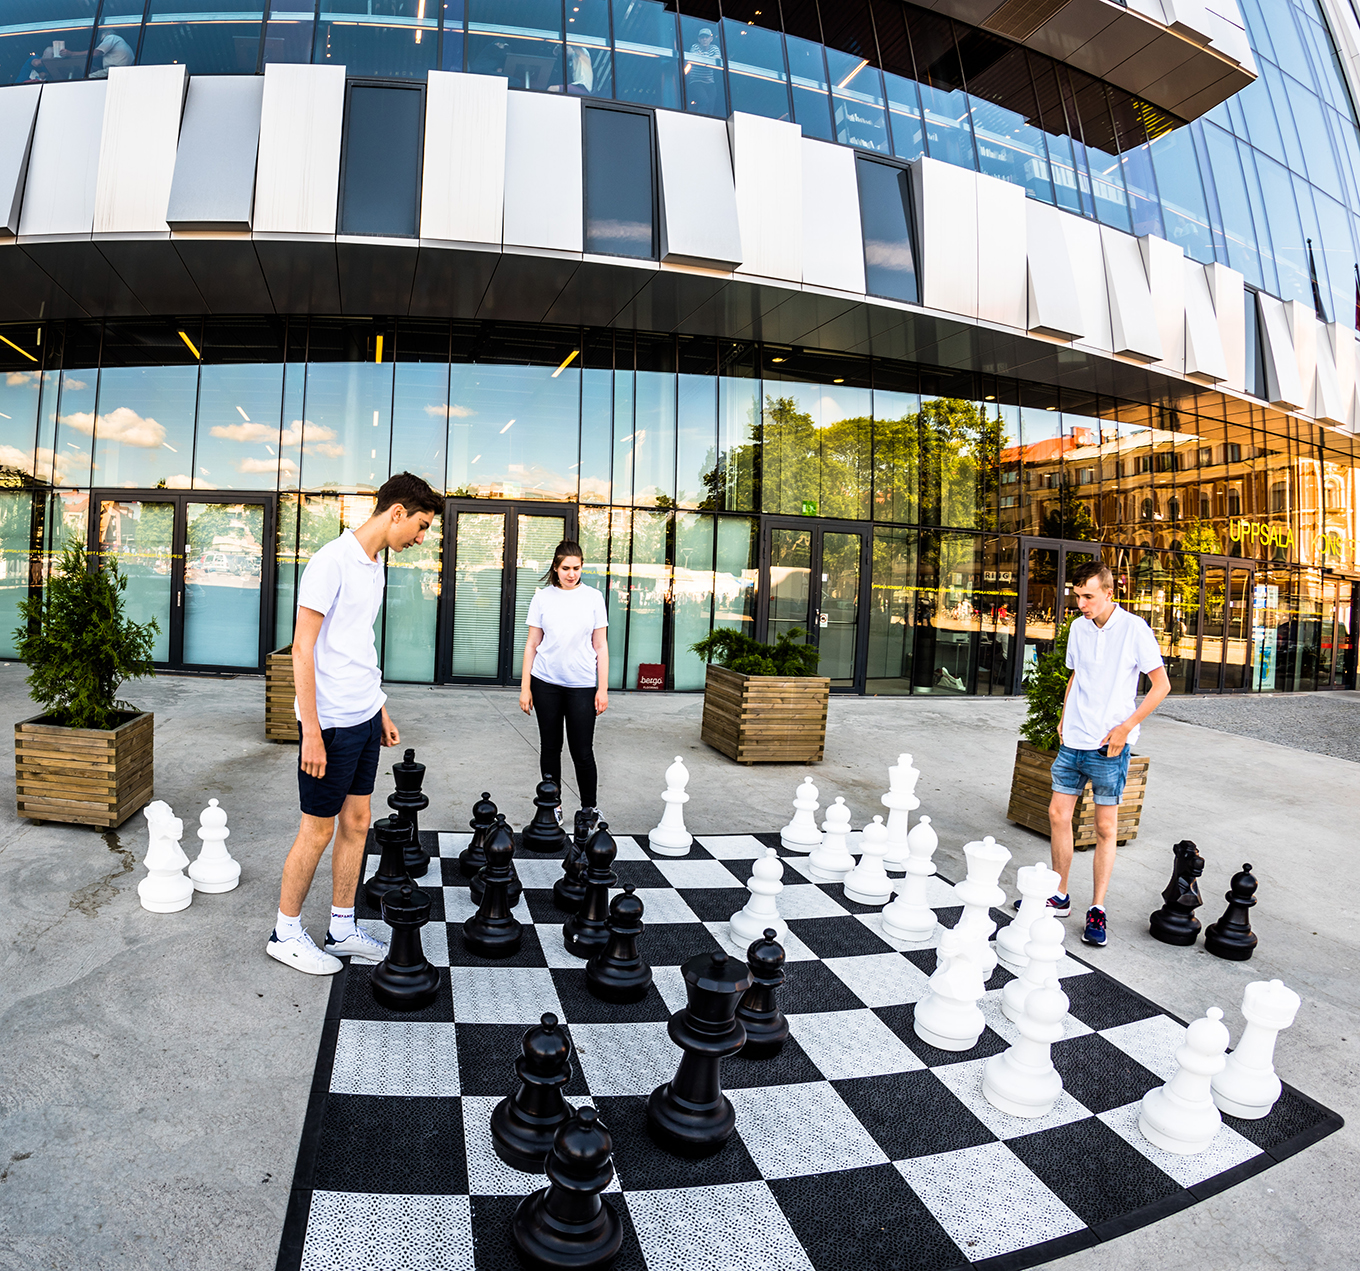 Bergo_Floor_Tiles_Swedish_Championship_Chess_copy.JPG